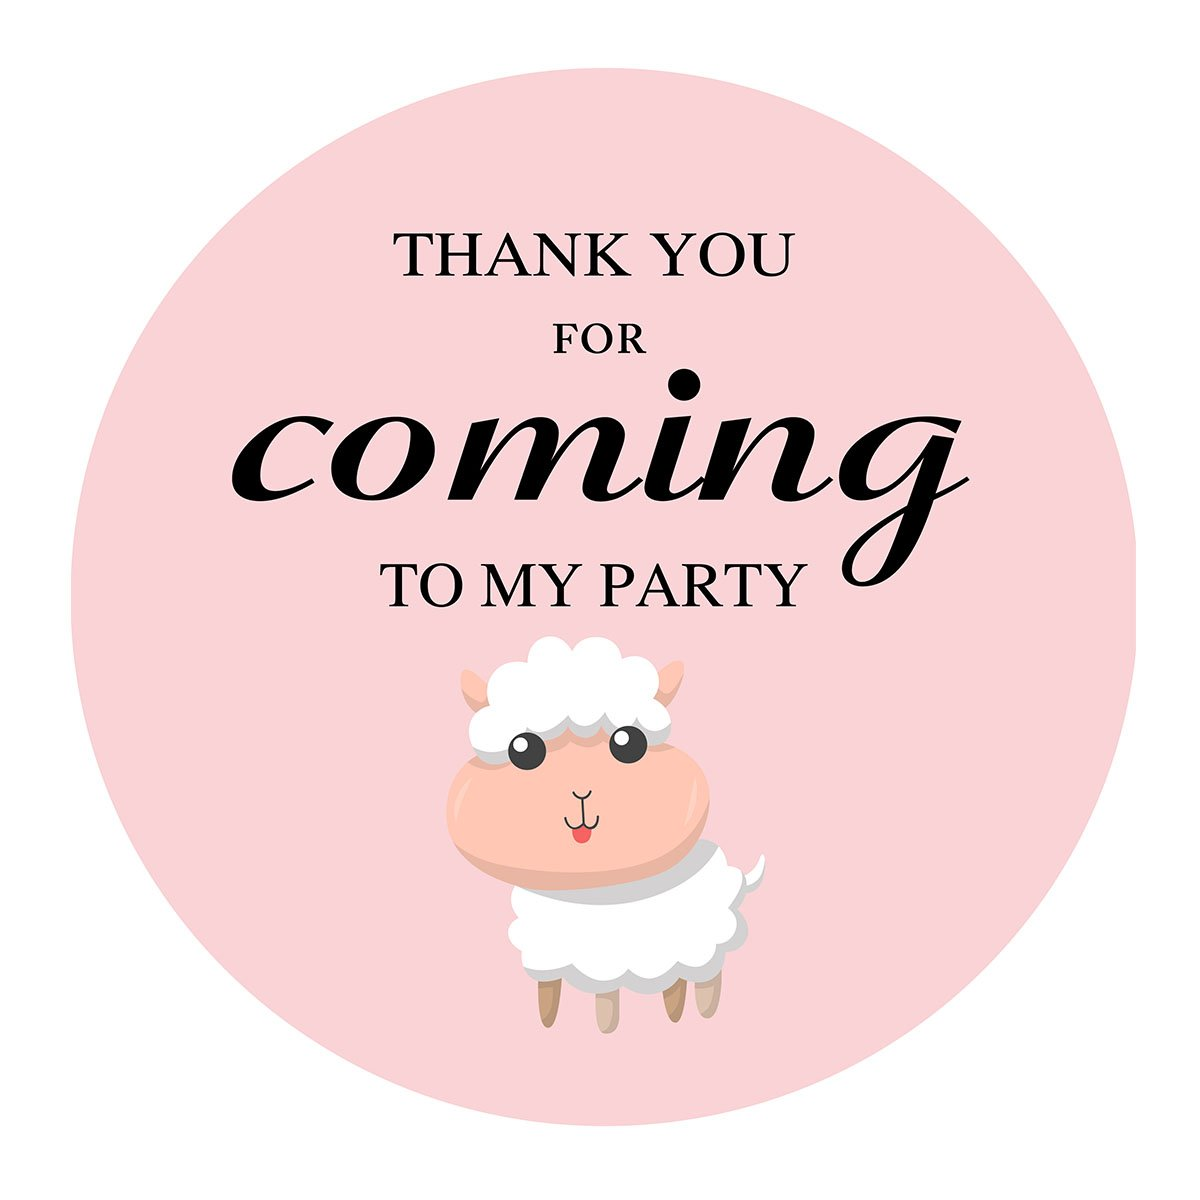 MAGJUCHE Pink Little Sheep Thank You Stickers, Farm Animal Lamb Girl Baby Shower or Birthday Sticker Labels, 2 Inch, 40-Pack